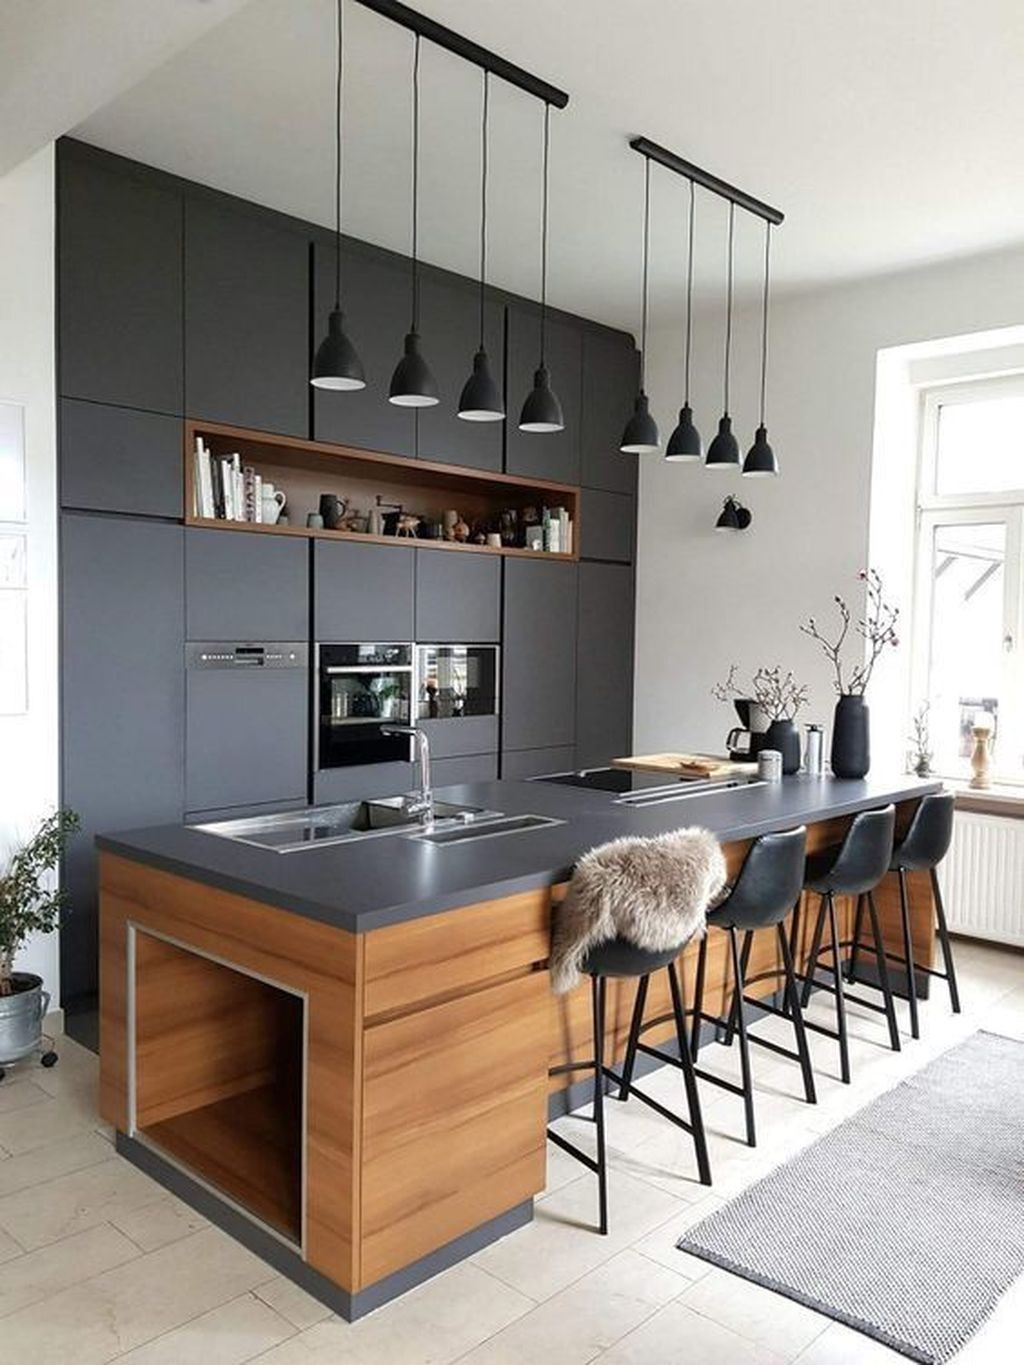 35 cool kitchen design ideas with temporary looks in 2020 on extraordinary kitchen remodel ideas id=14846